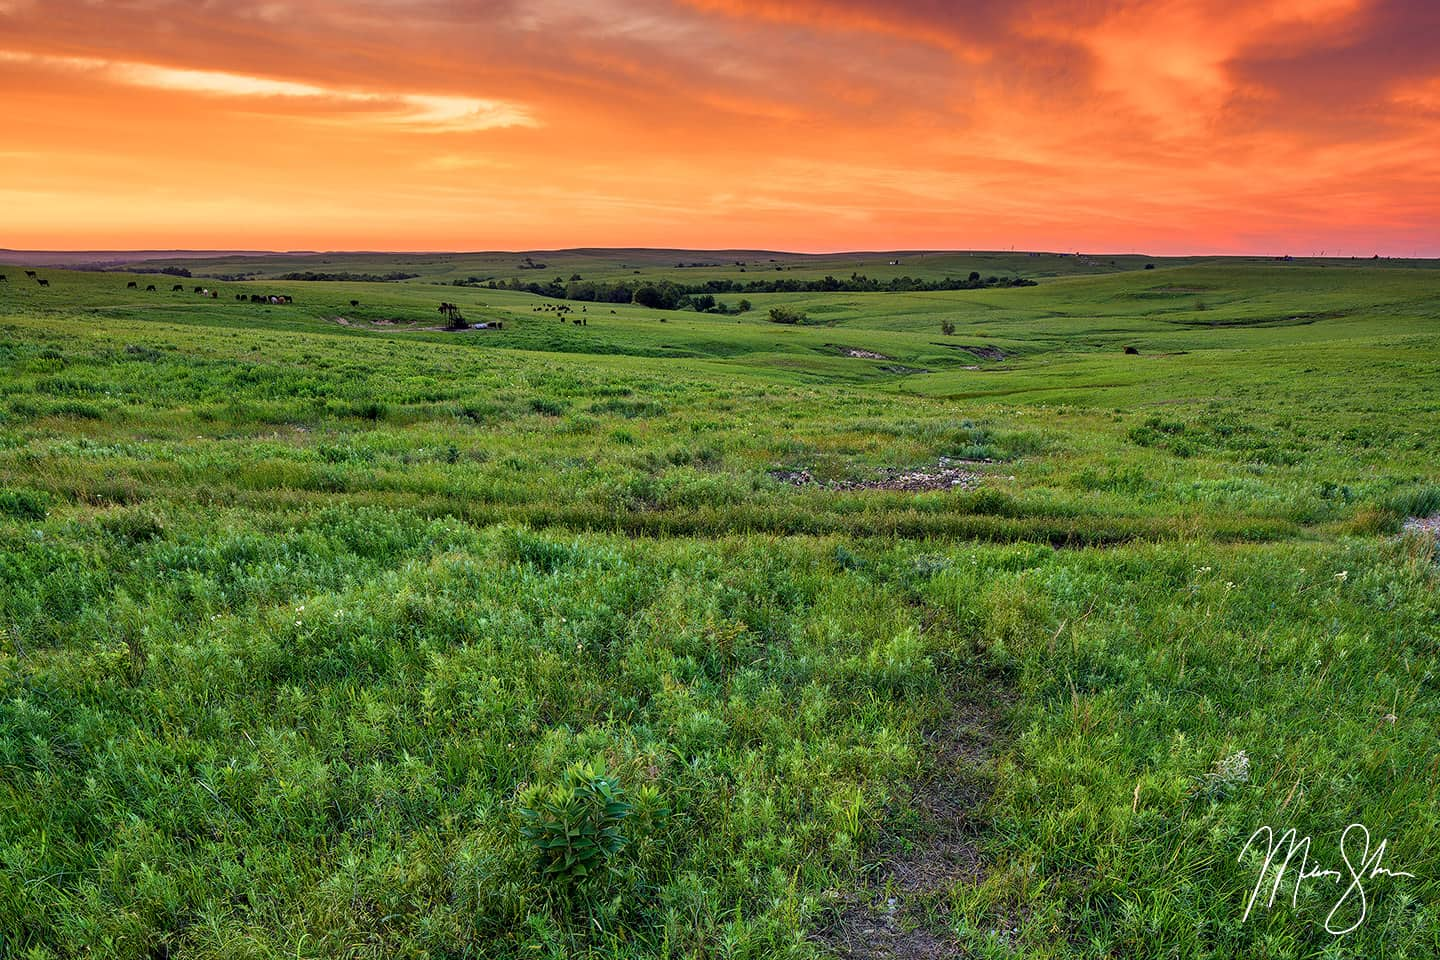 Flint Hills Sunset - Texaco Hill, The Flint Hills, Kansas